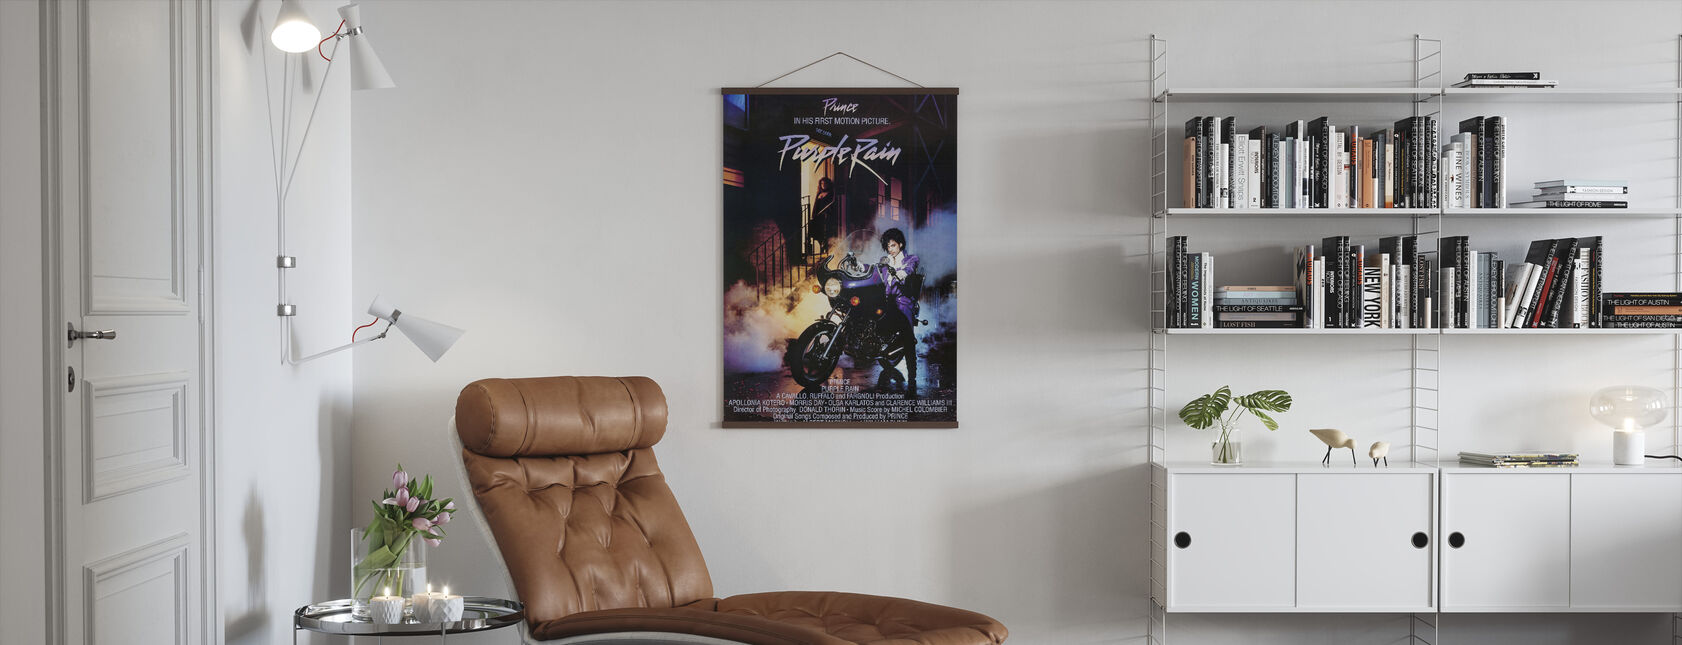 Prince in Purple Rain - Poster - Living Room